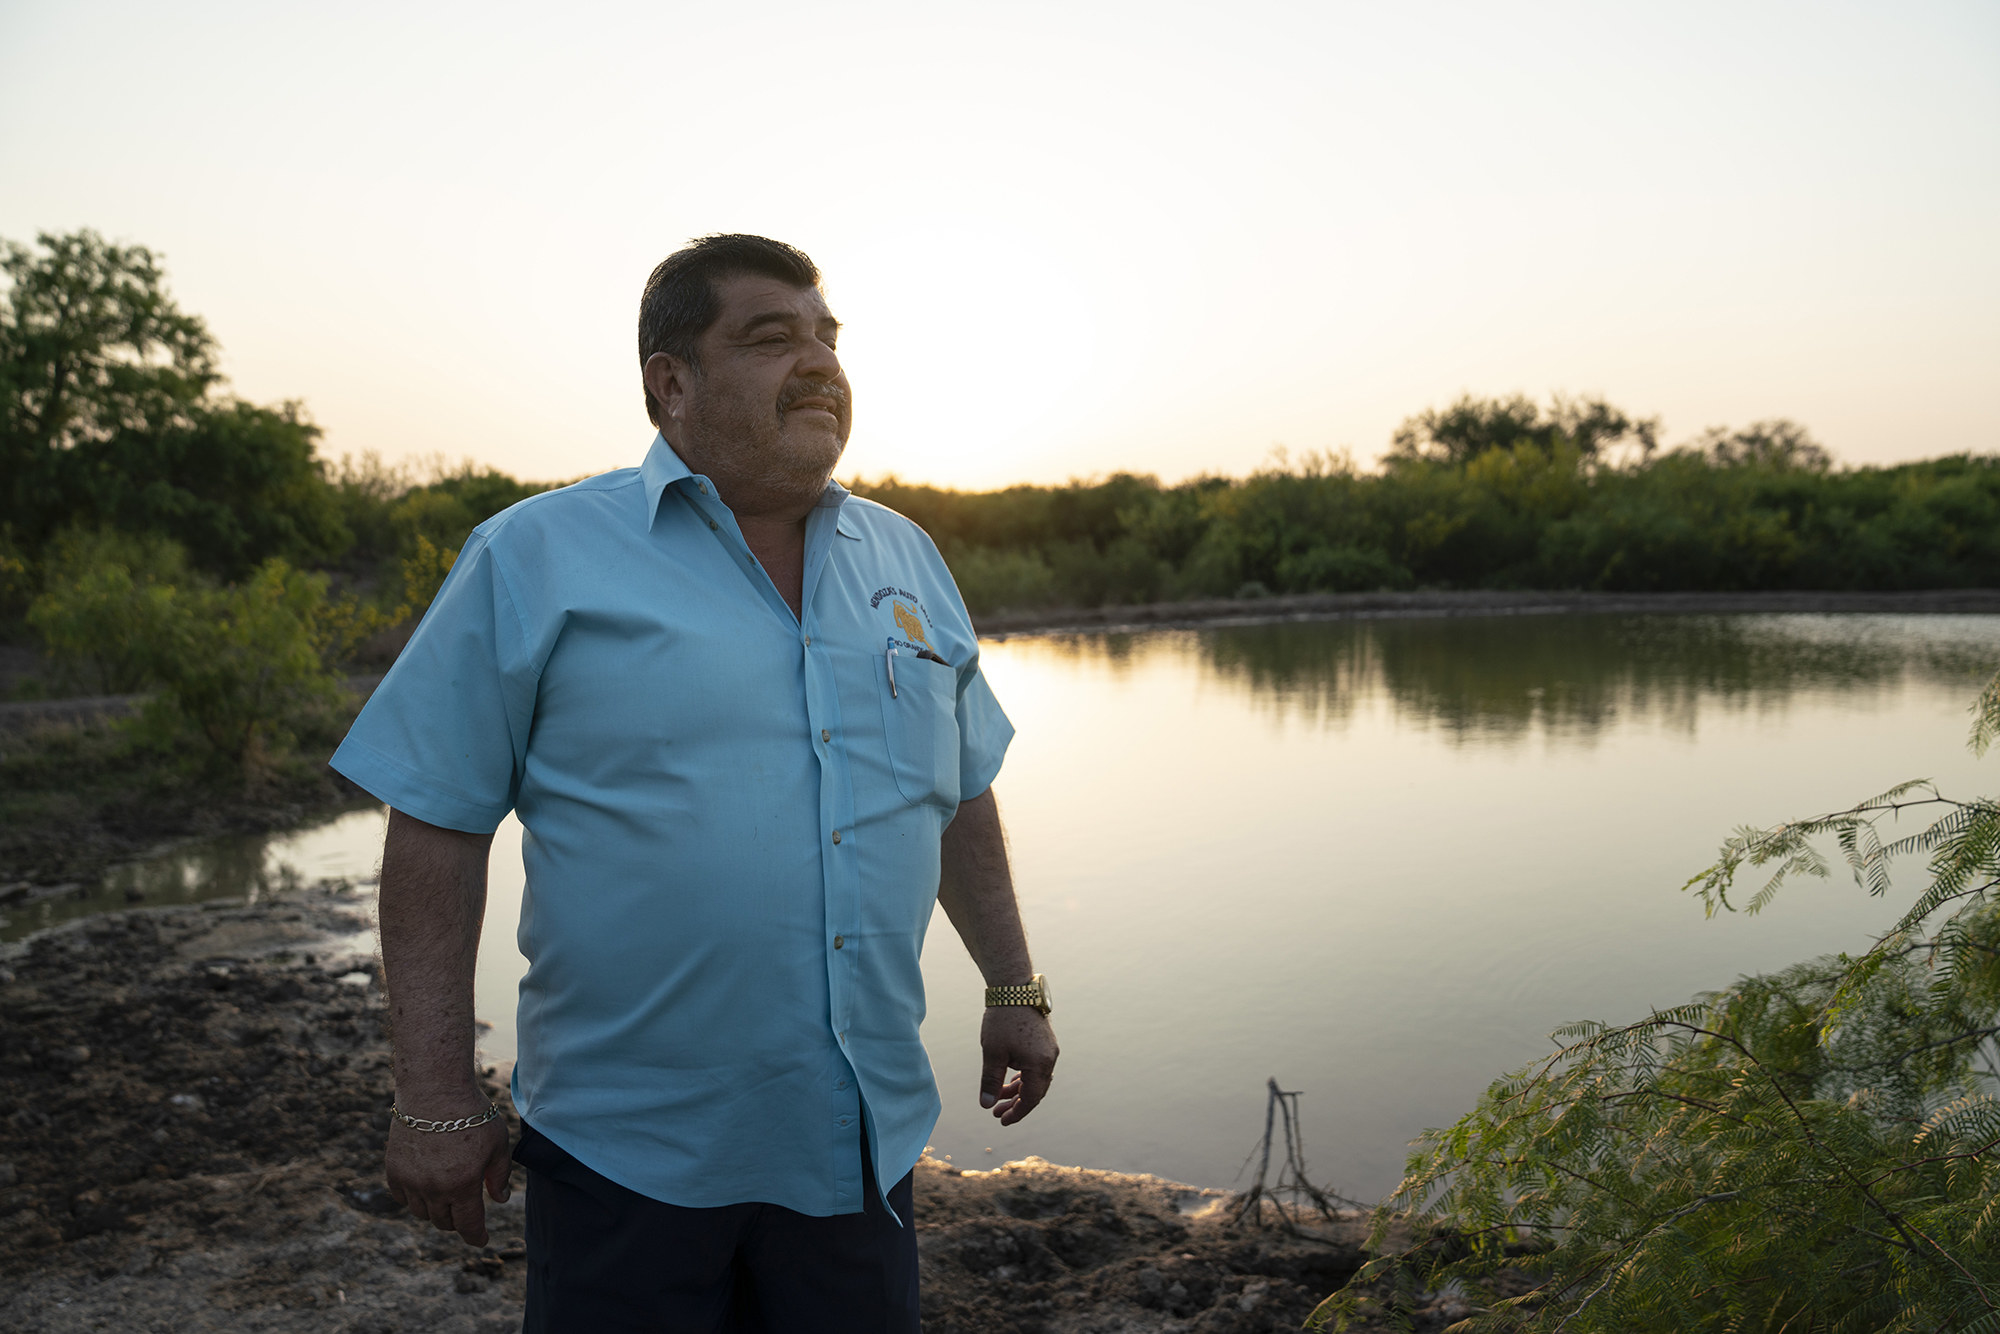 Ociel Mendoza in front of a shallow pond on his ranch at sunset